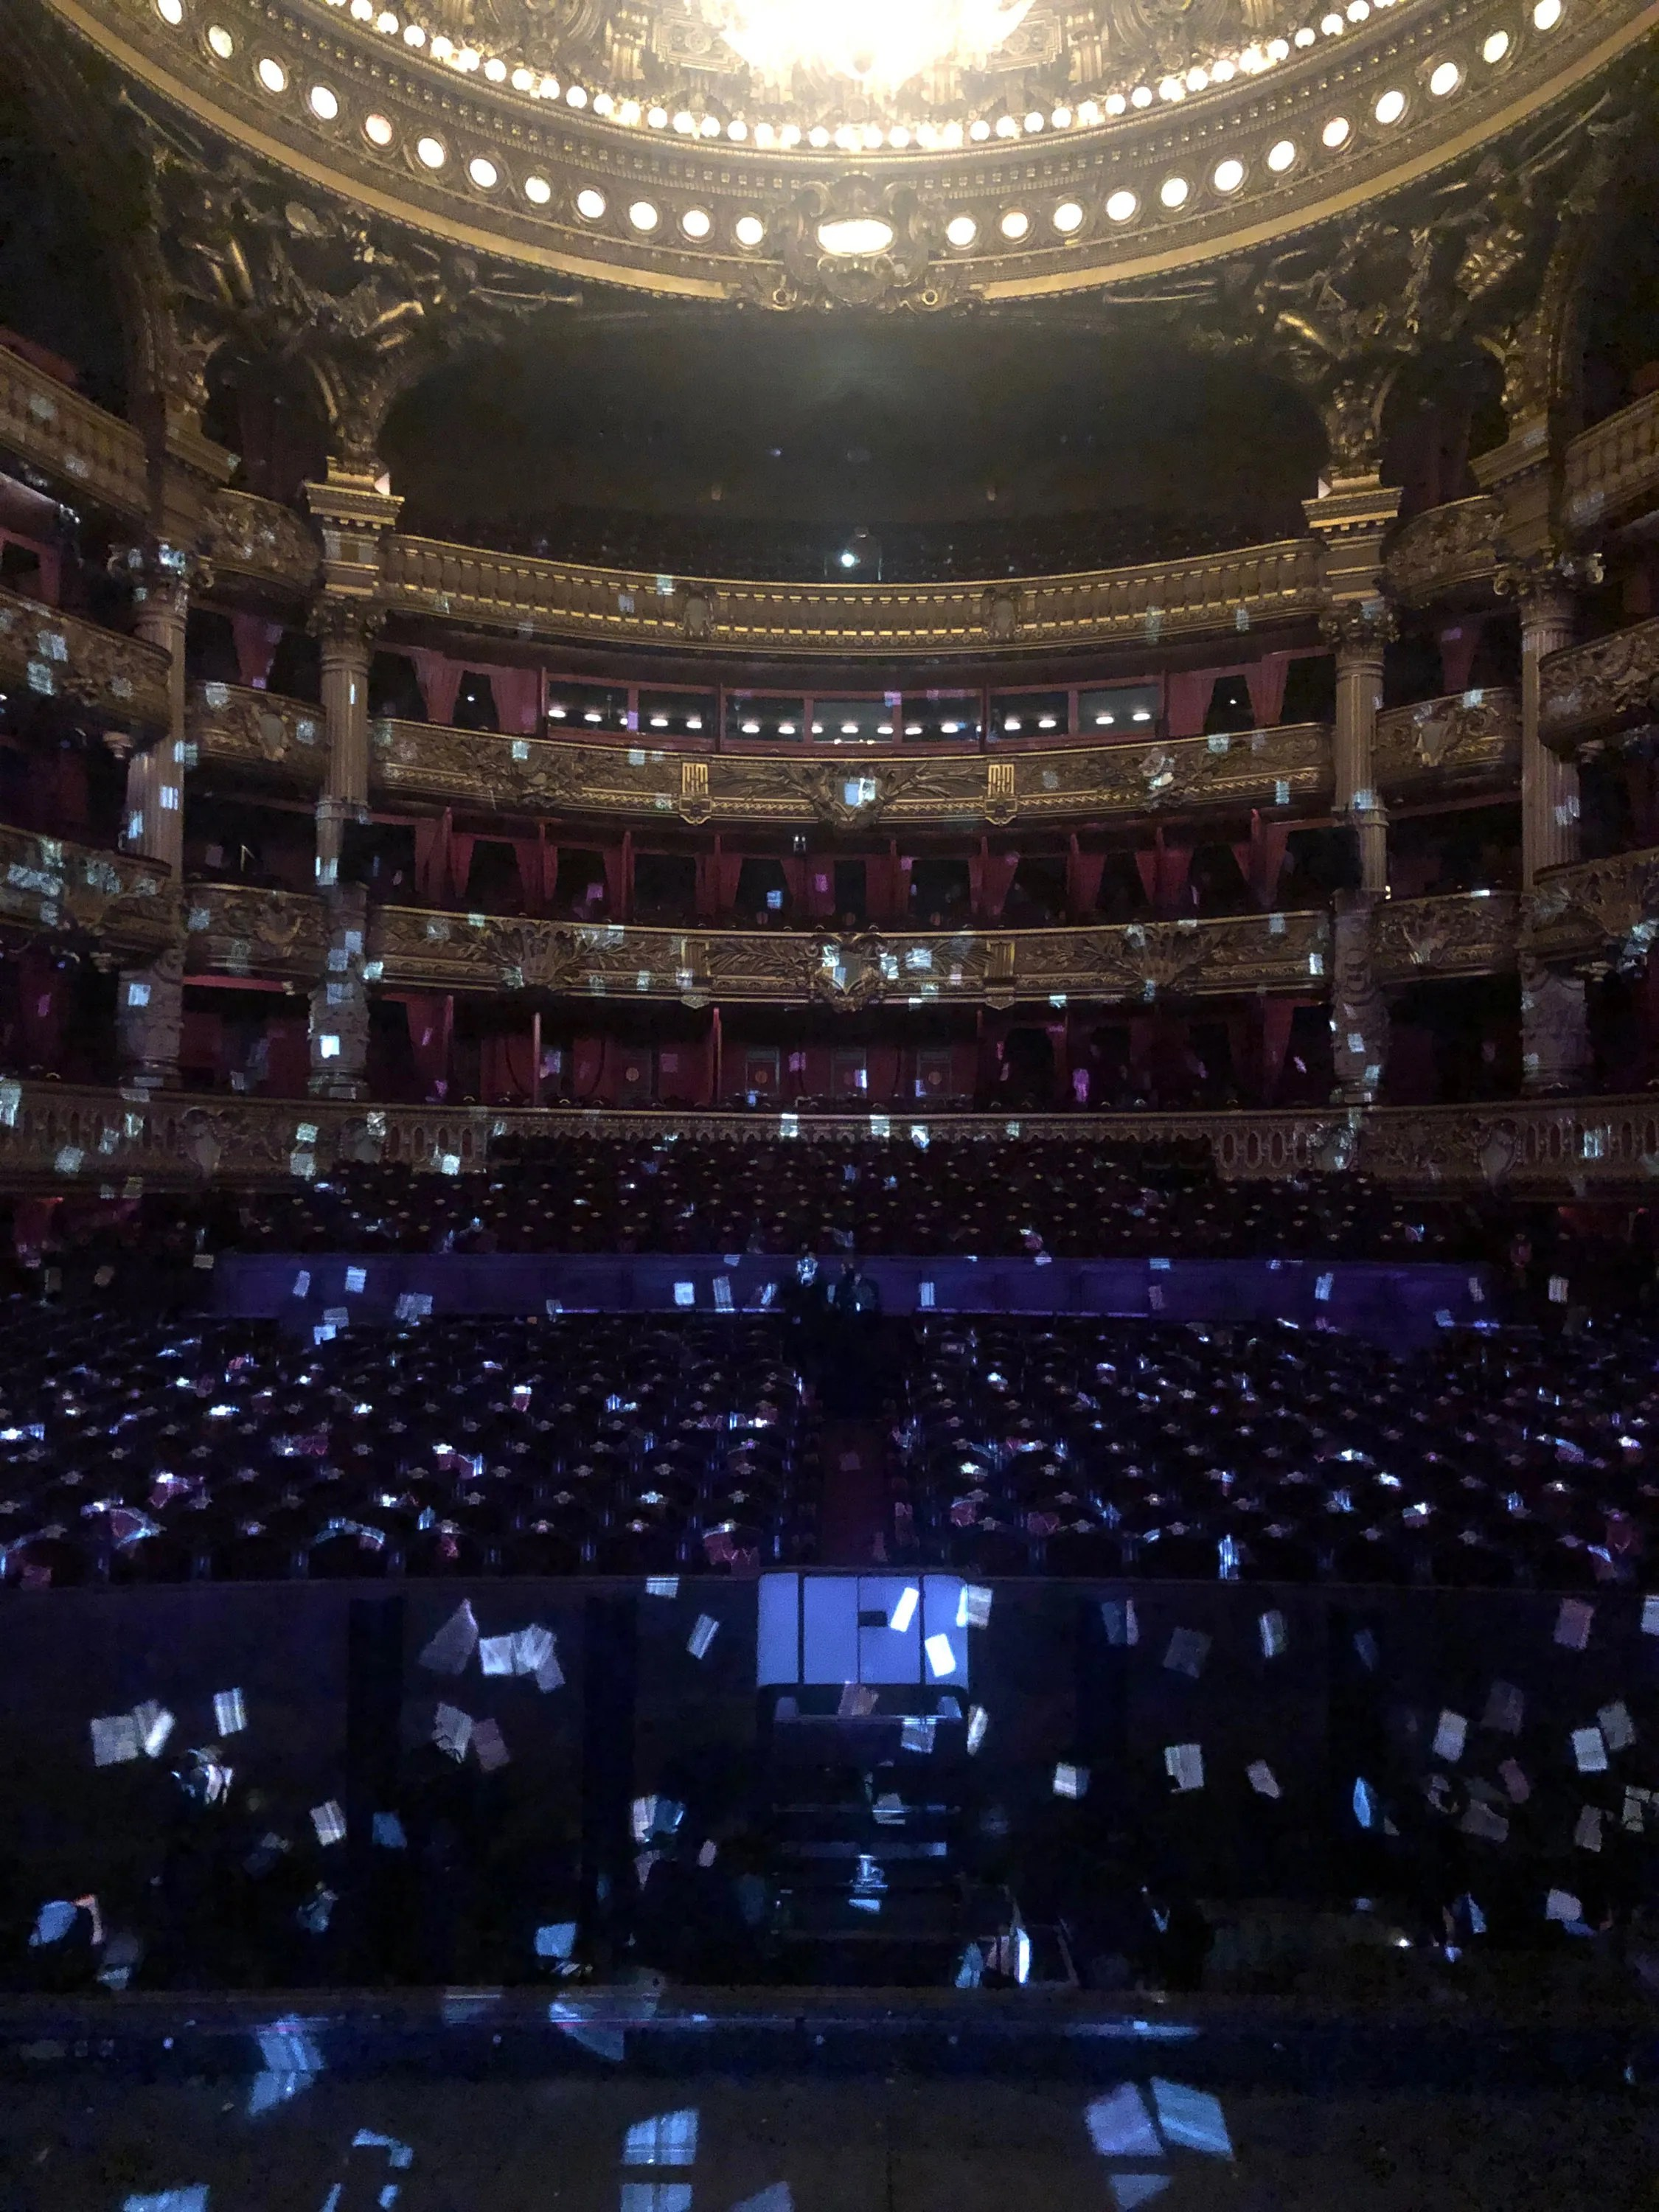 Arte Concert Opera De Paris The Paris Opera Celebrates 350 Years With A Glittering Gala Vogue